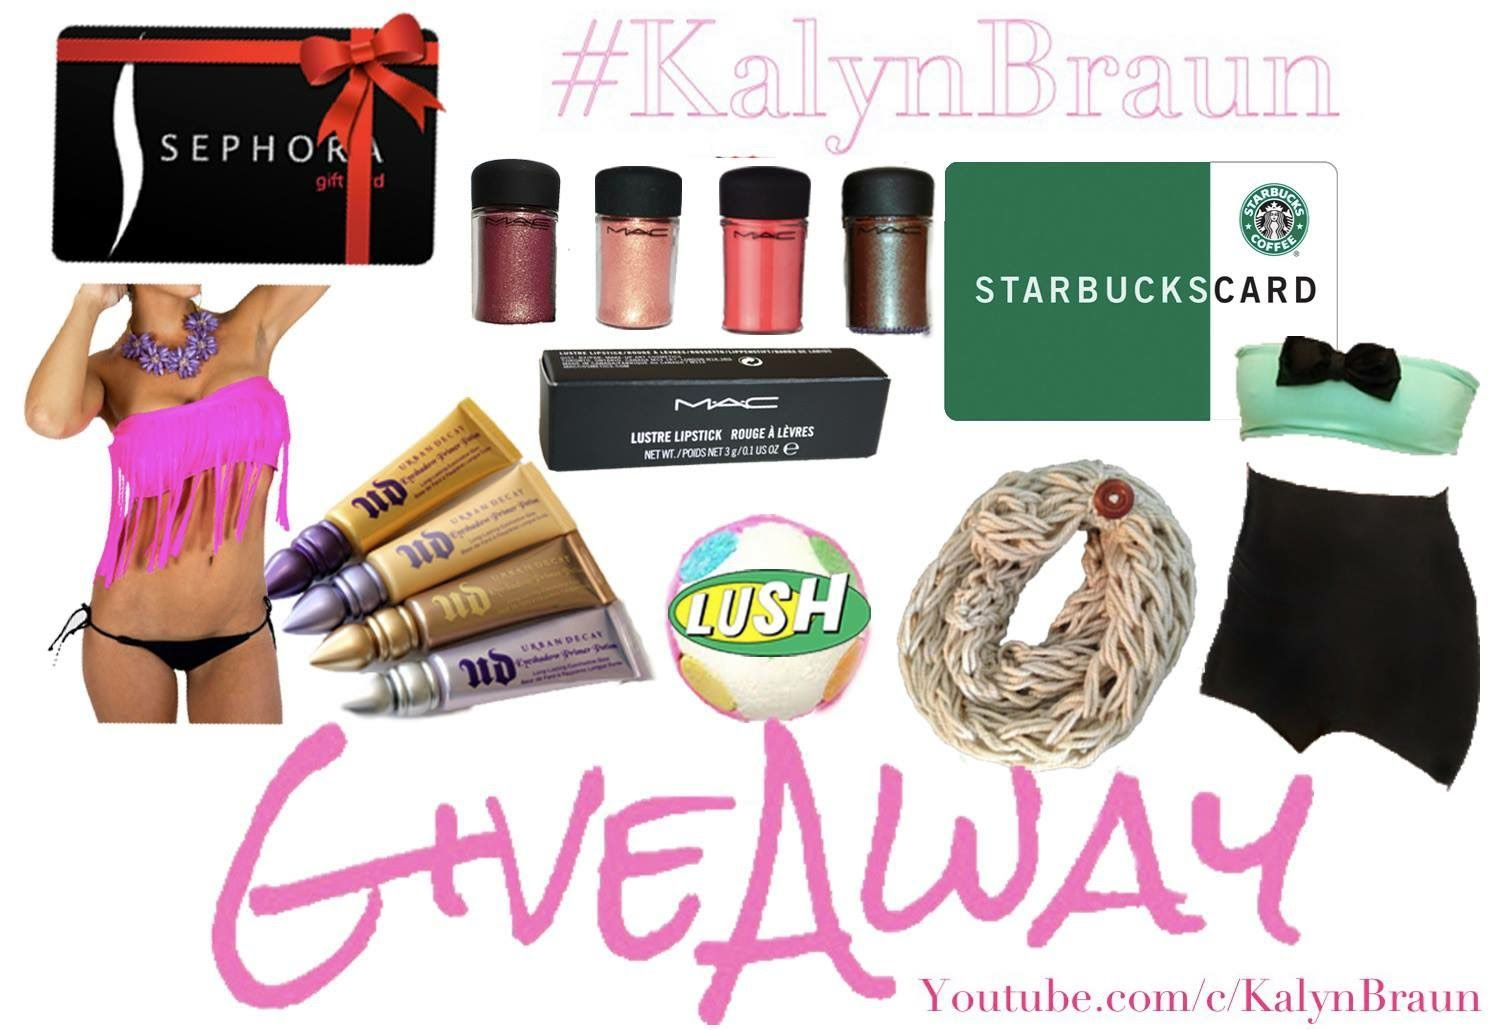 Giveaway Rules  New Video! Be sure to watch if you want to enter my HUGE GIVEAWAY! XOX <3